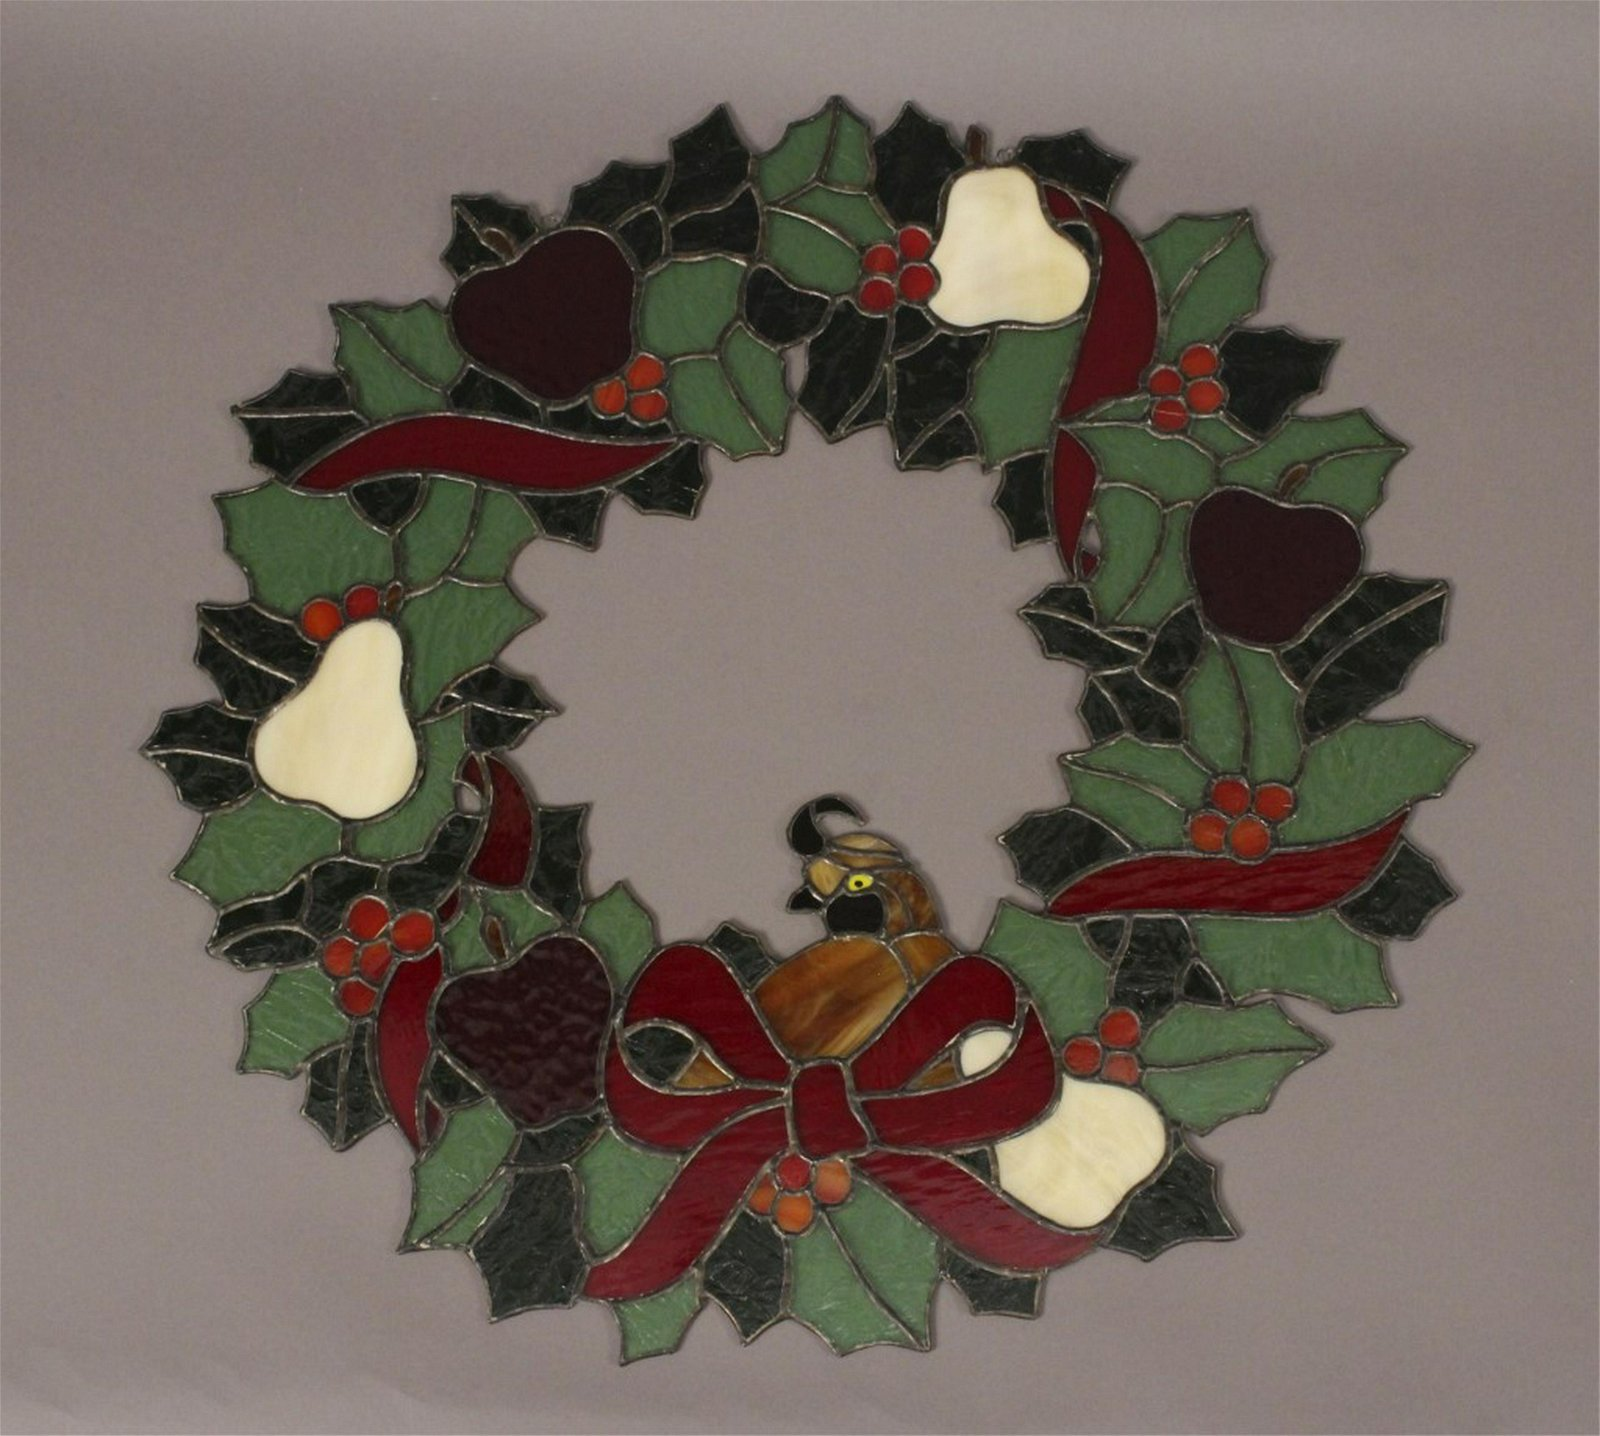 Stained Glass Partridge in a Pear Tree Wreath